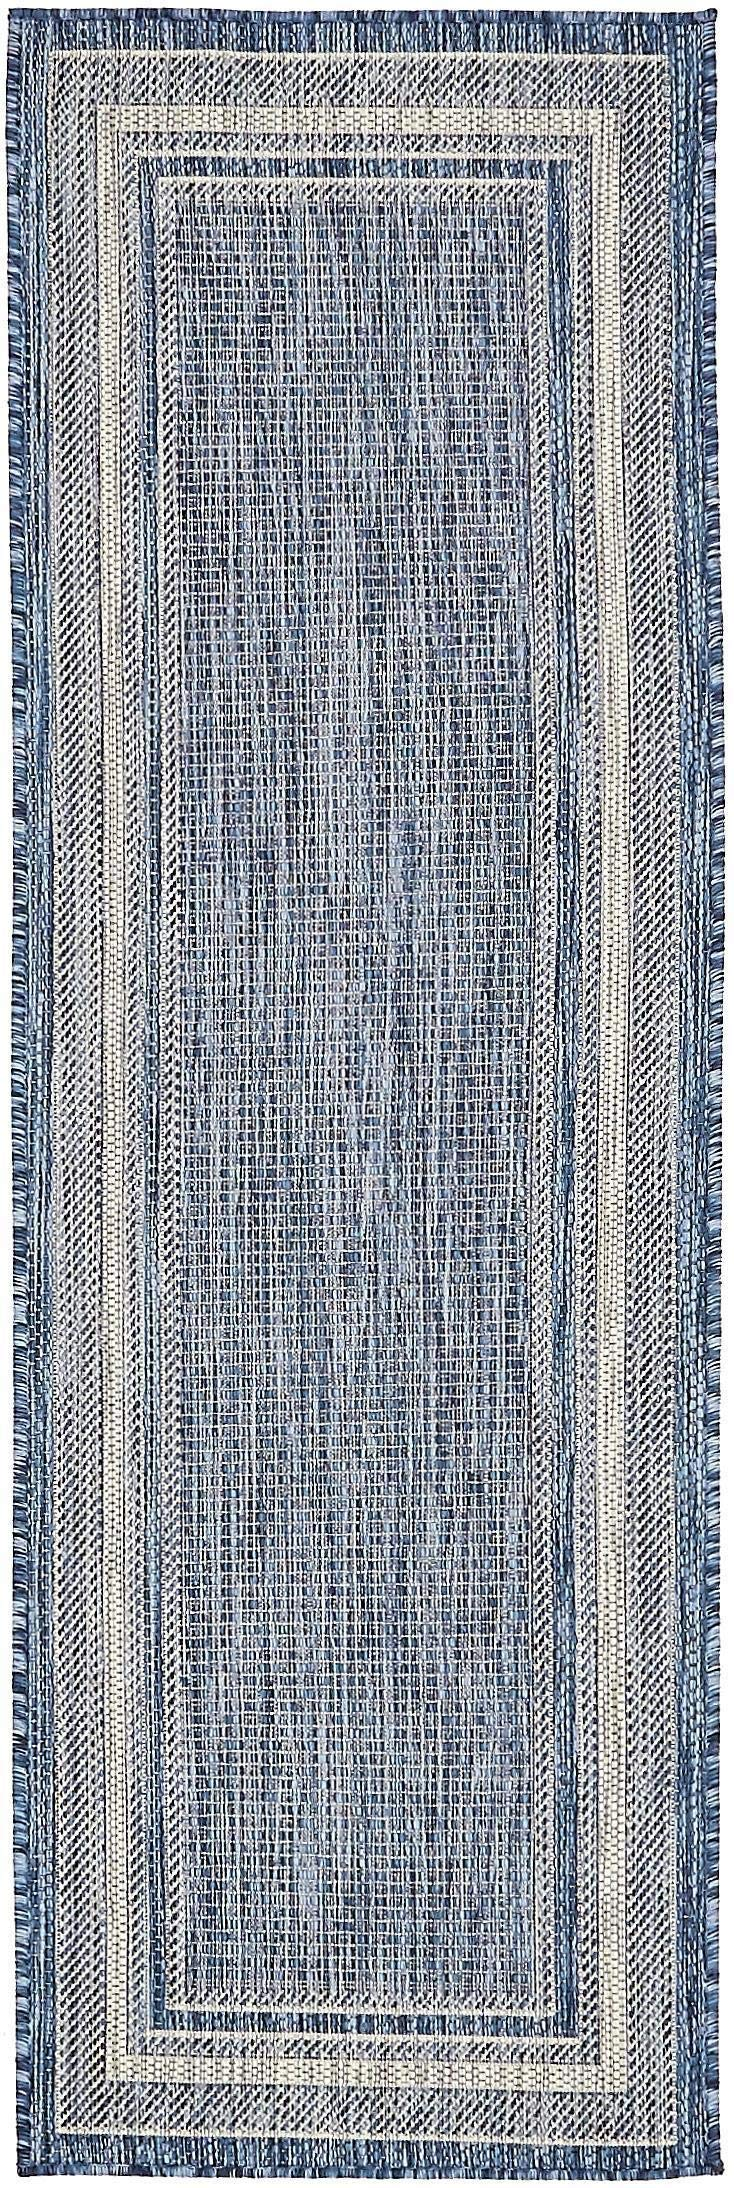 Unique Loom Outdoor Collection Casual Solid Border Indoor and Outdoor Transitional Blue Runner Rug (2' x 6')